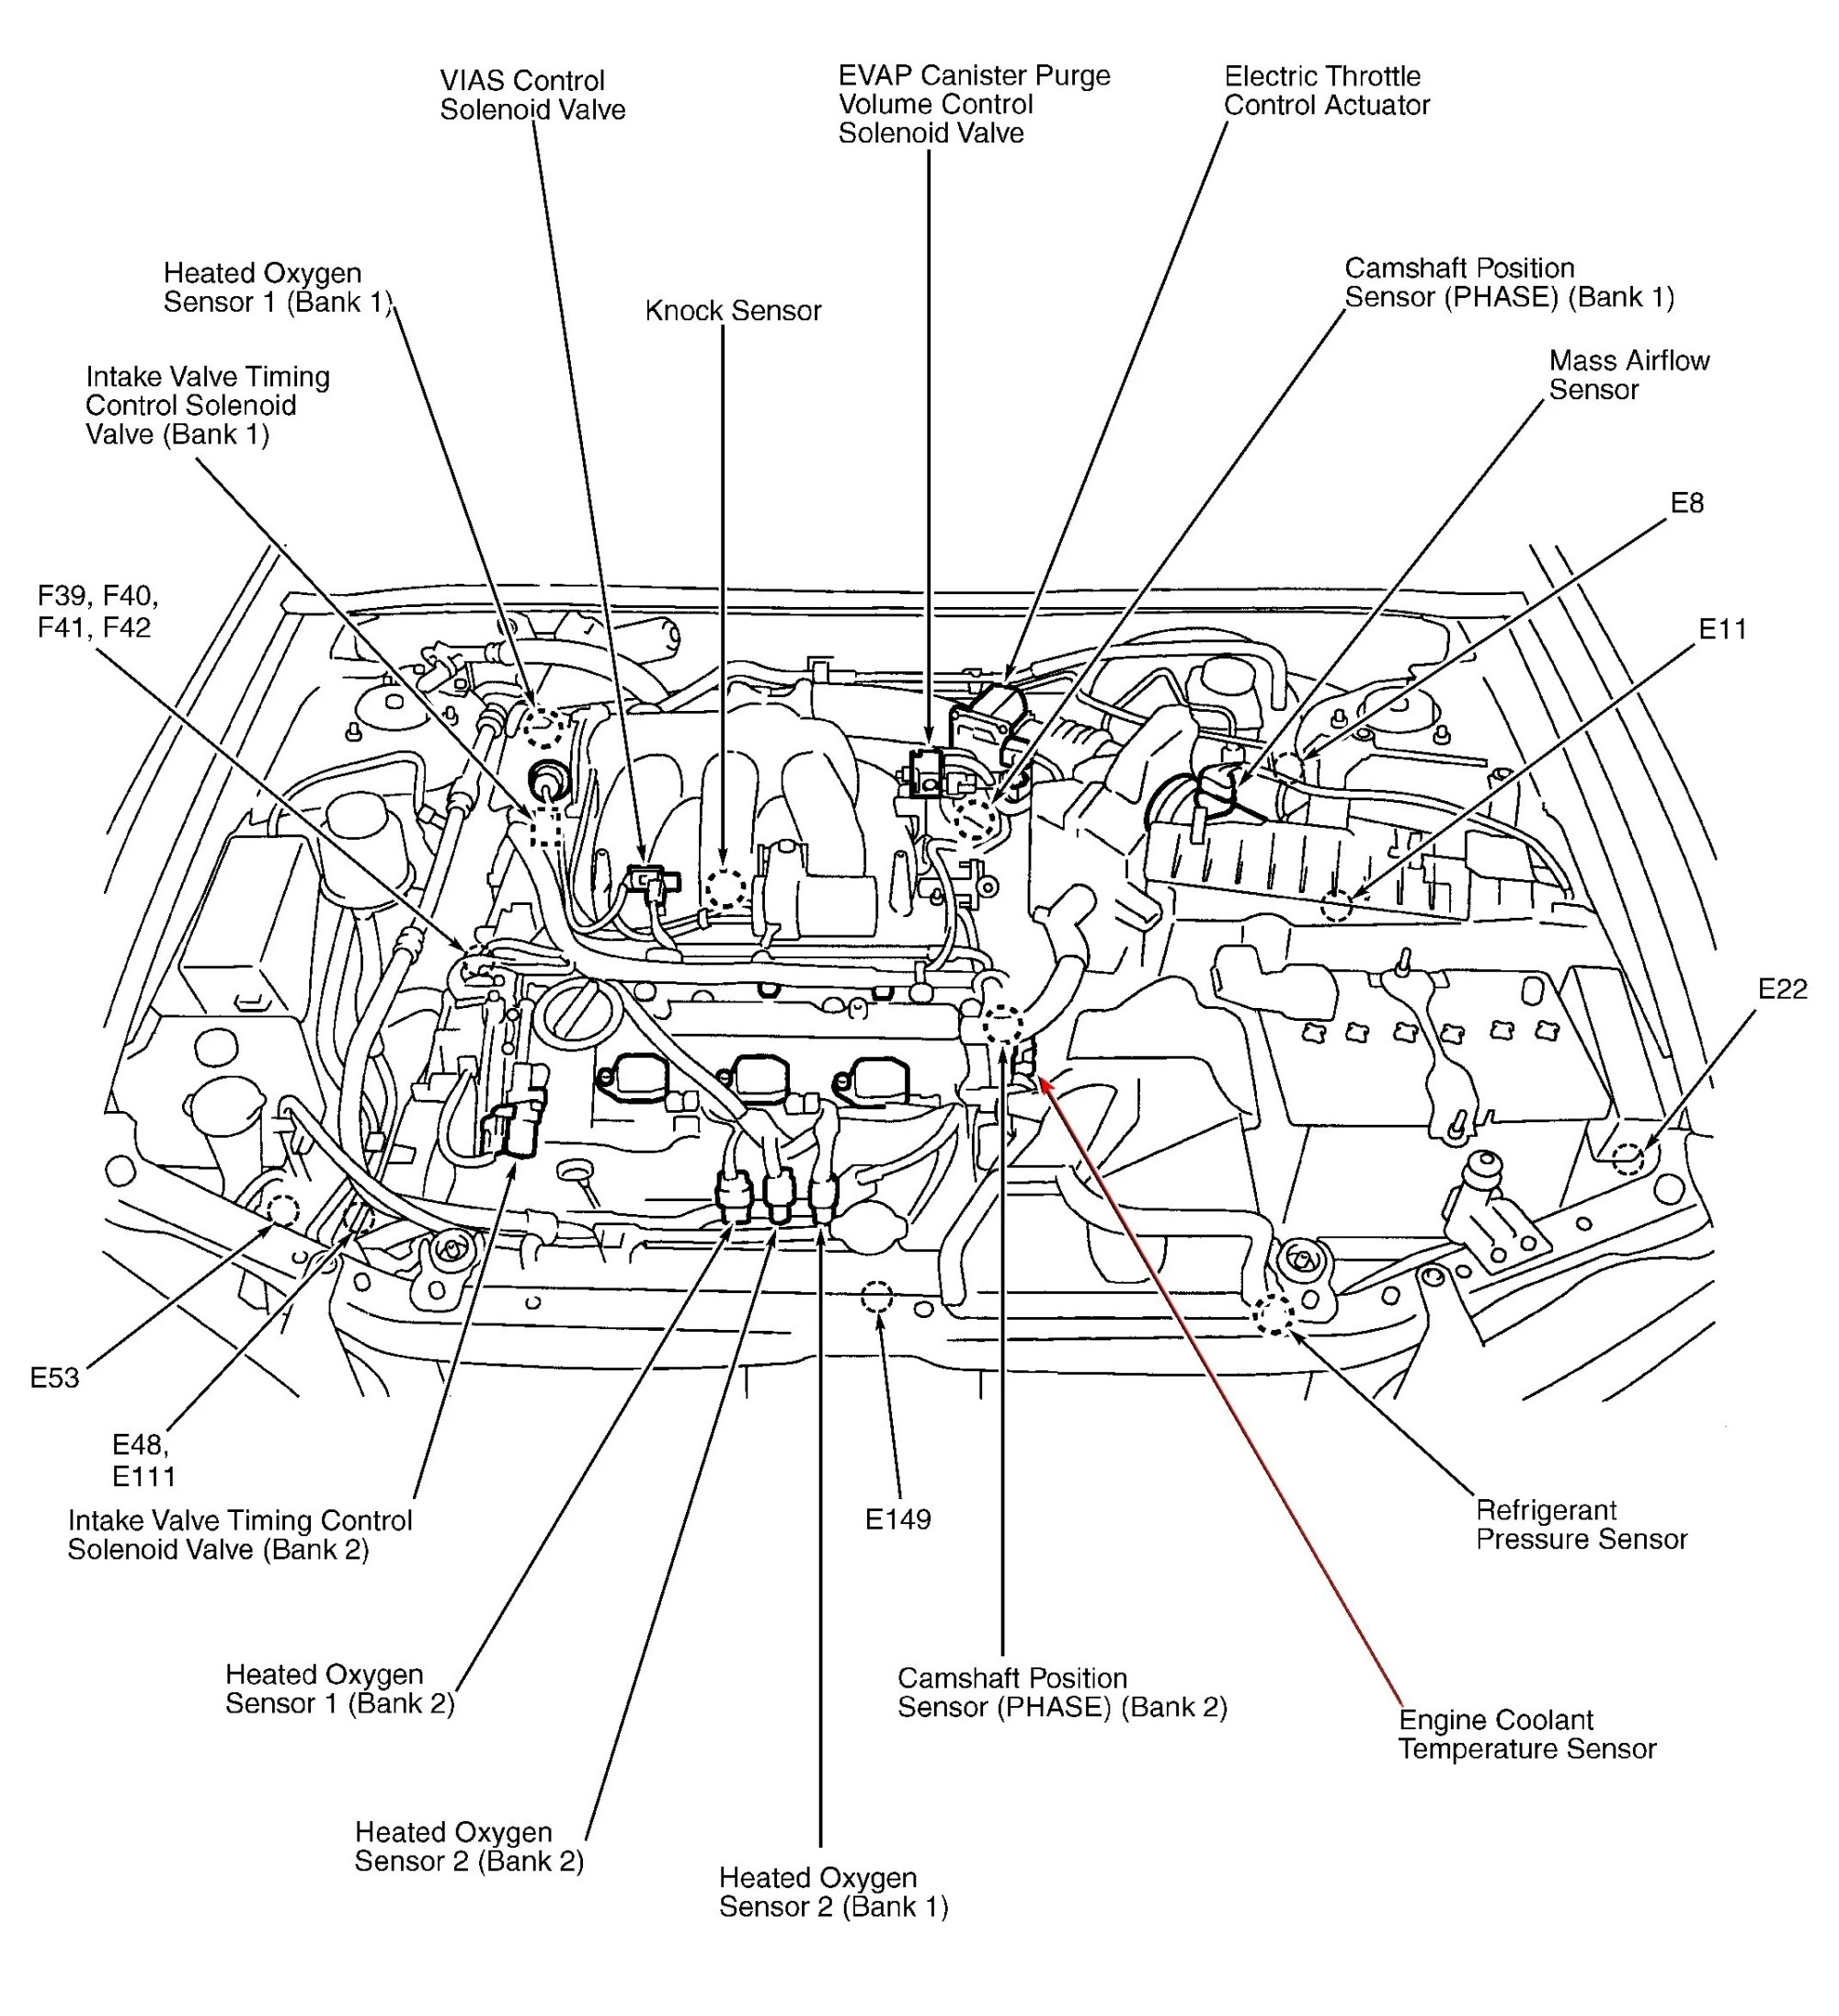 hight resolution of nissan cube engine diagram wiring diagram progresifnissan cube engine diagram data wiring diagram update nissan cube